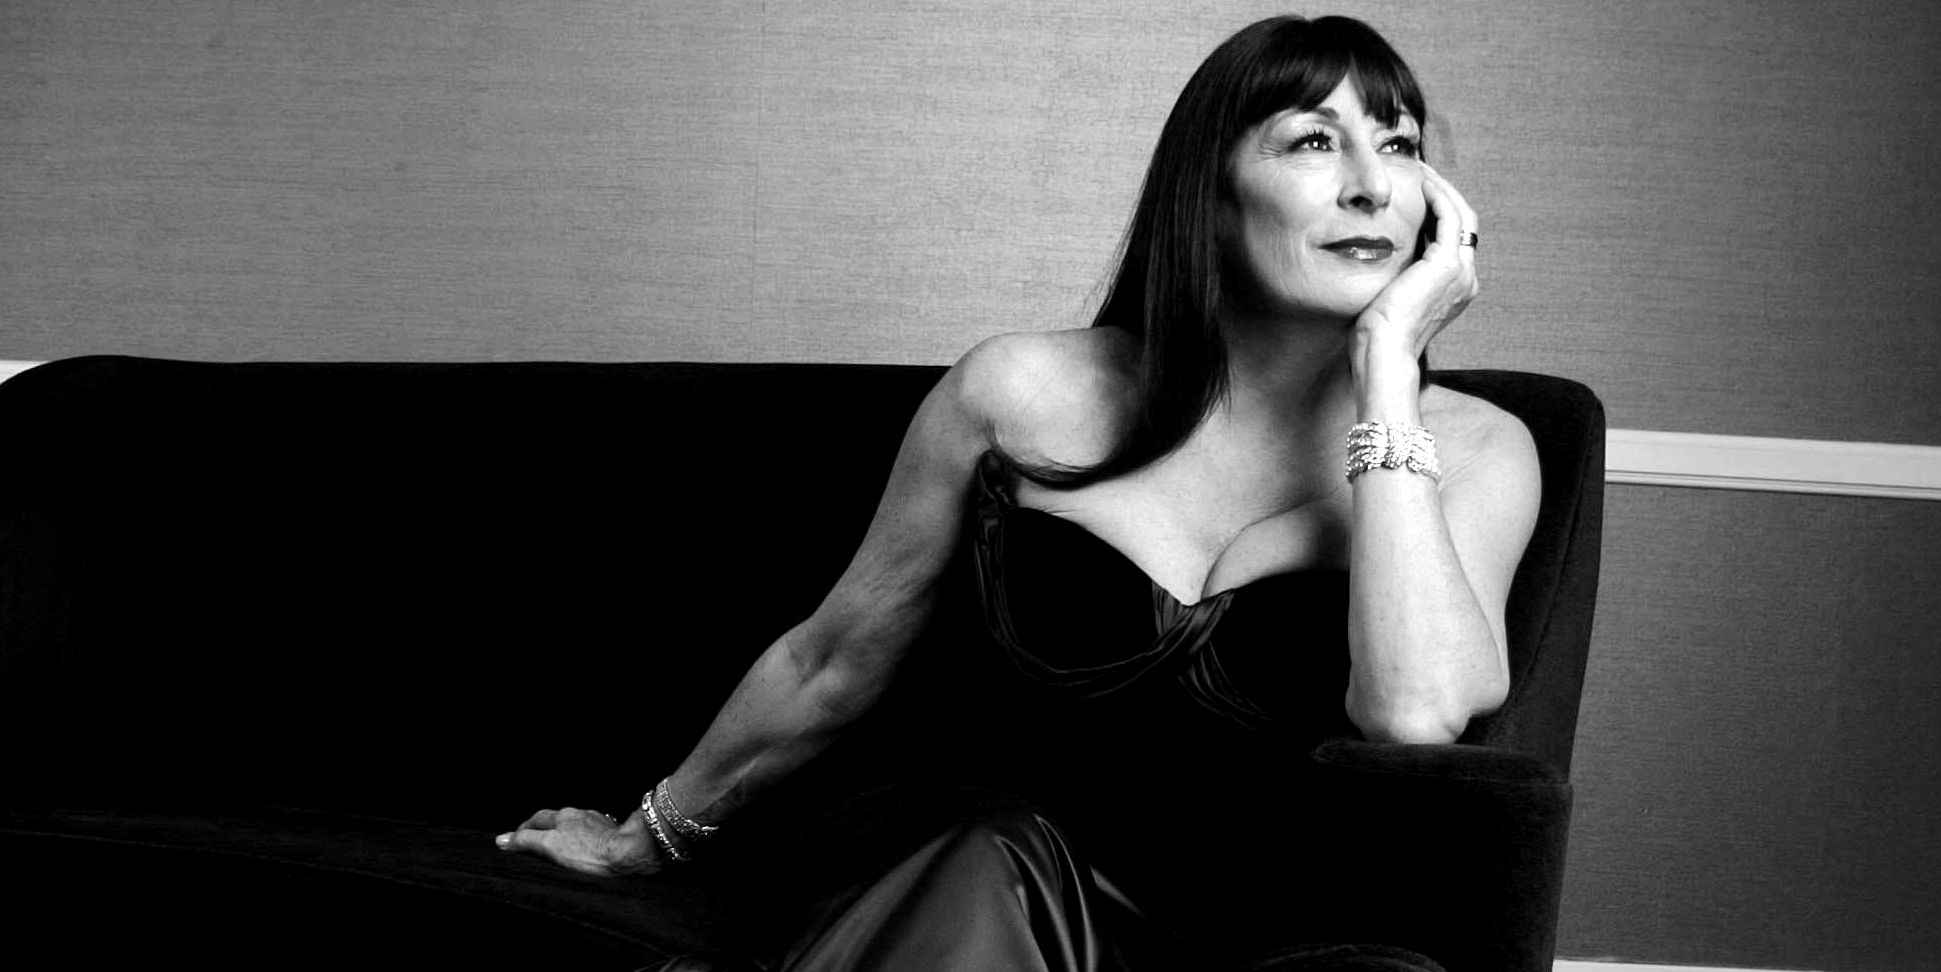 Life Advice from Iconic Oscar Winner Anjelica Huston